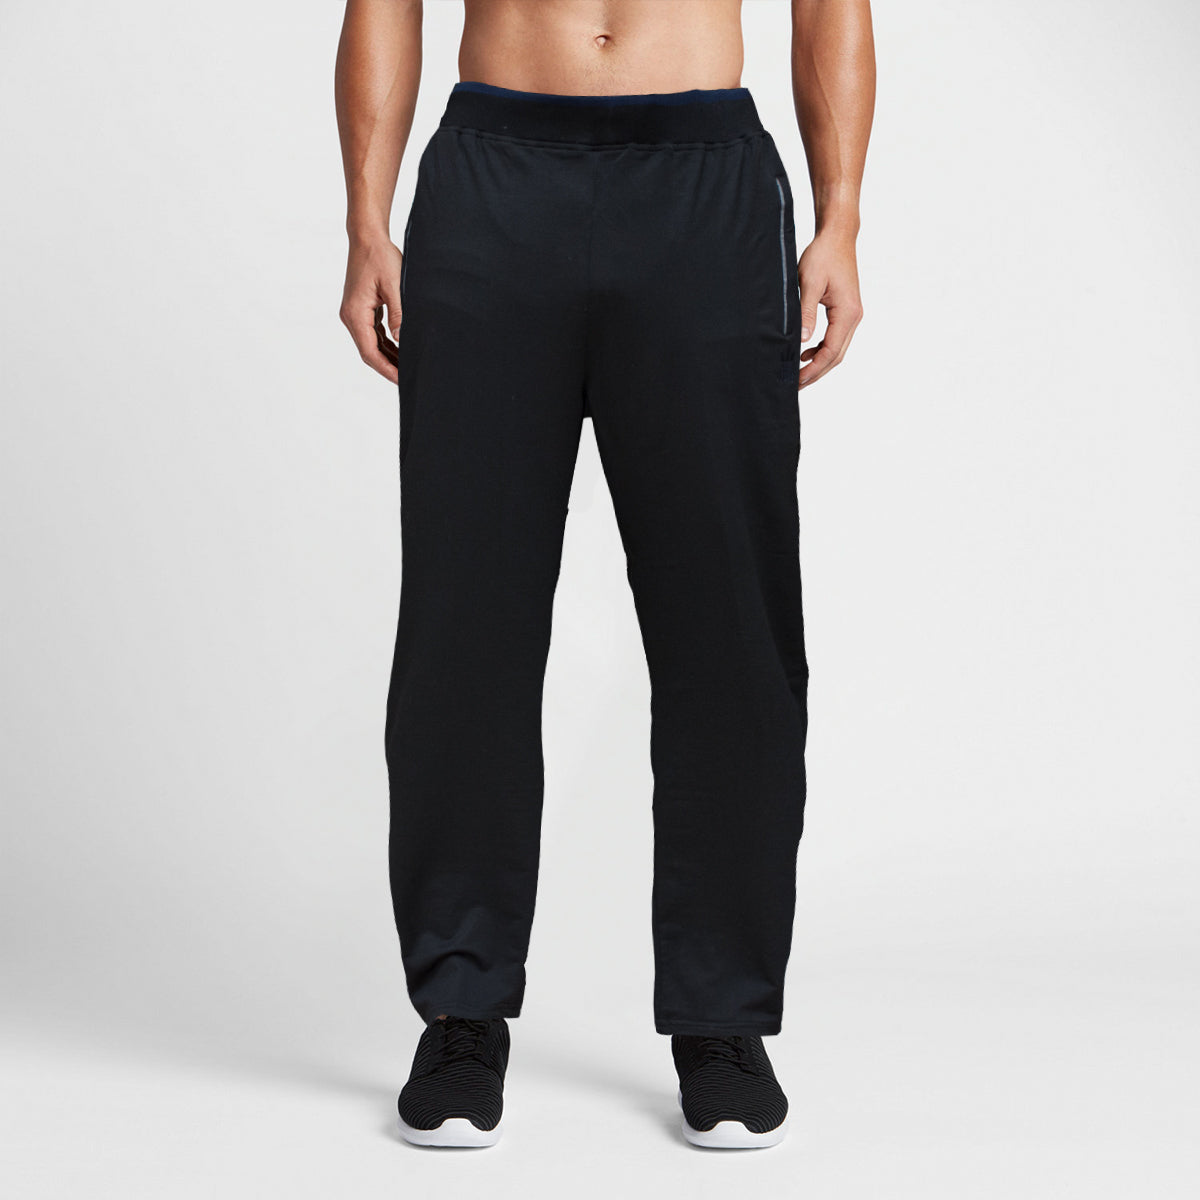 Adidas Black Navy Rib Trouser - Deeds.pk